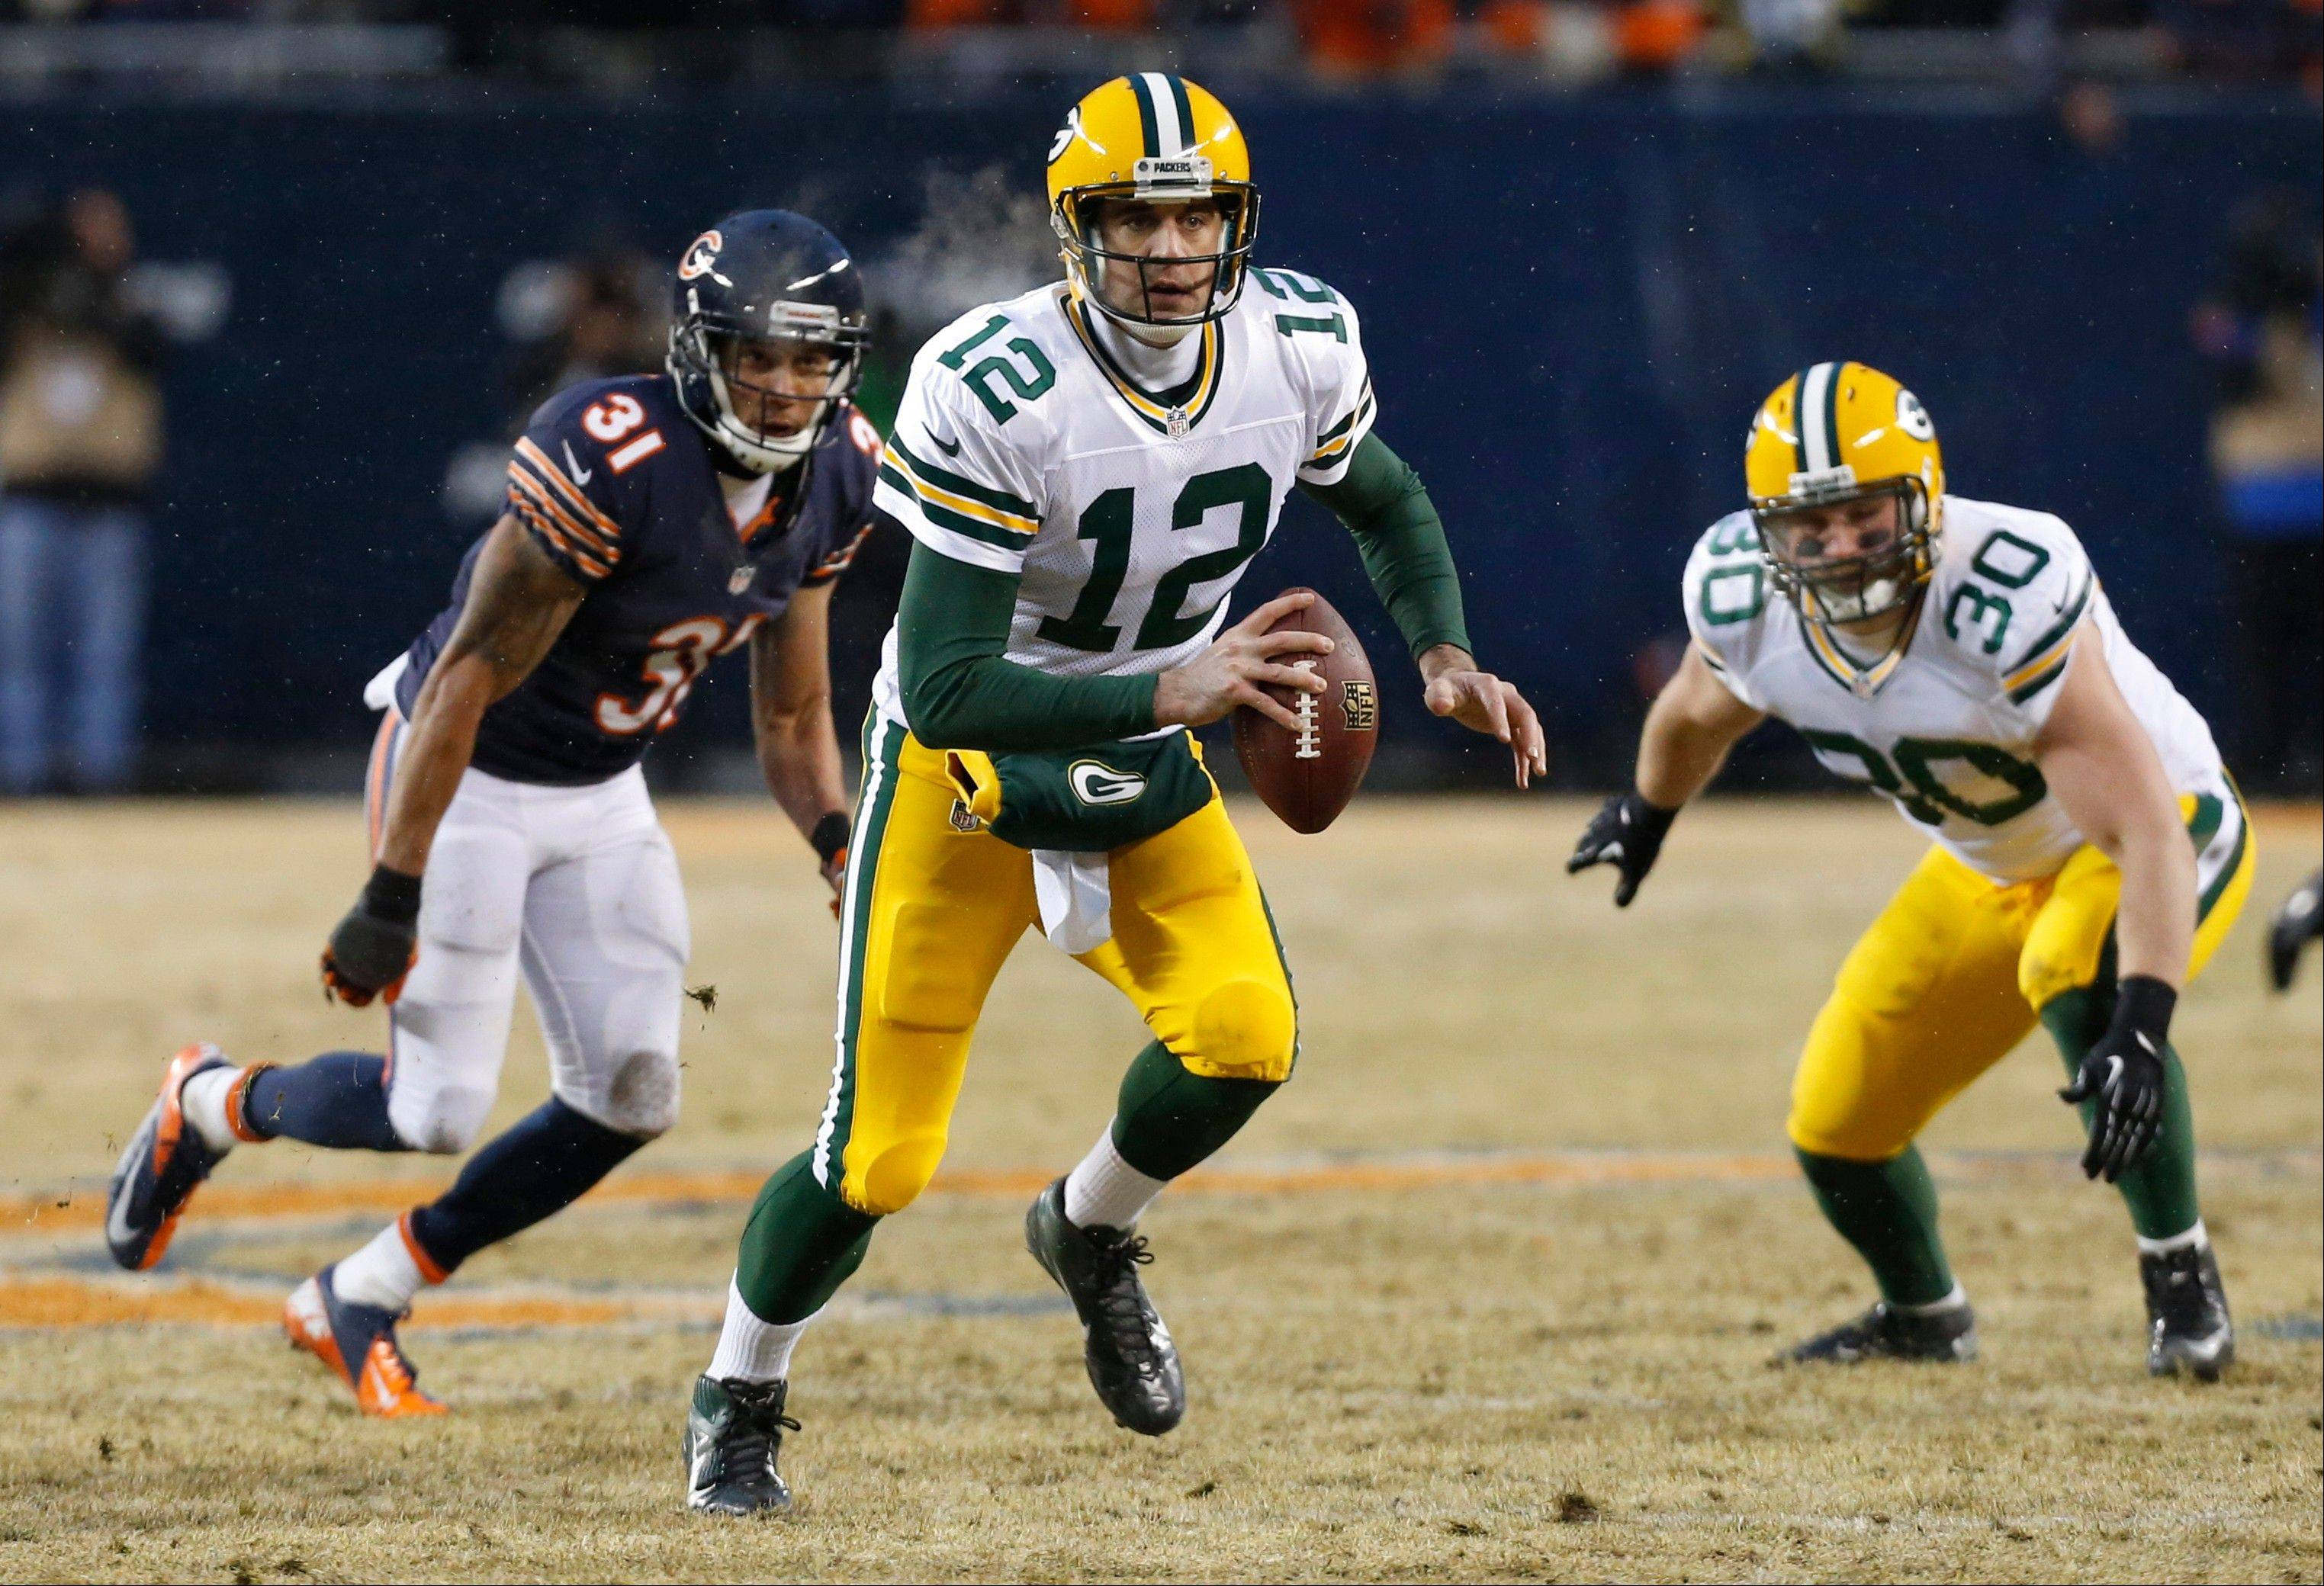 Green Bay Packers quarterback Aaron Rodgers (12) scrambles as he looks for a receiver during the first half.